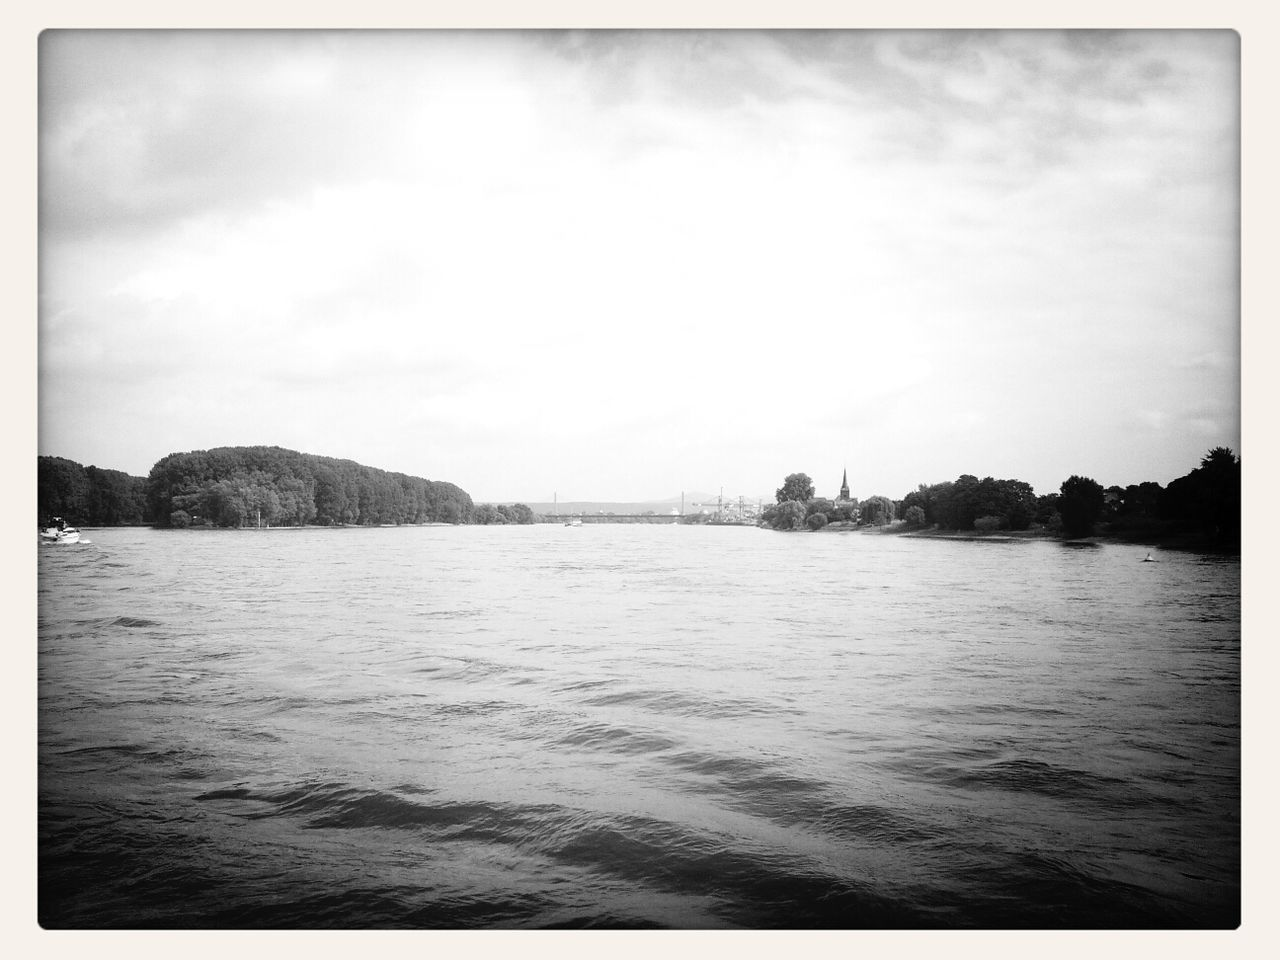 Rheinfahrt - Boat Ride Blackandwhite Mobile Photography Landscape